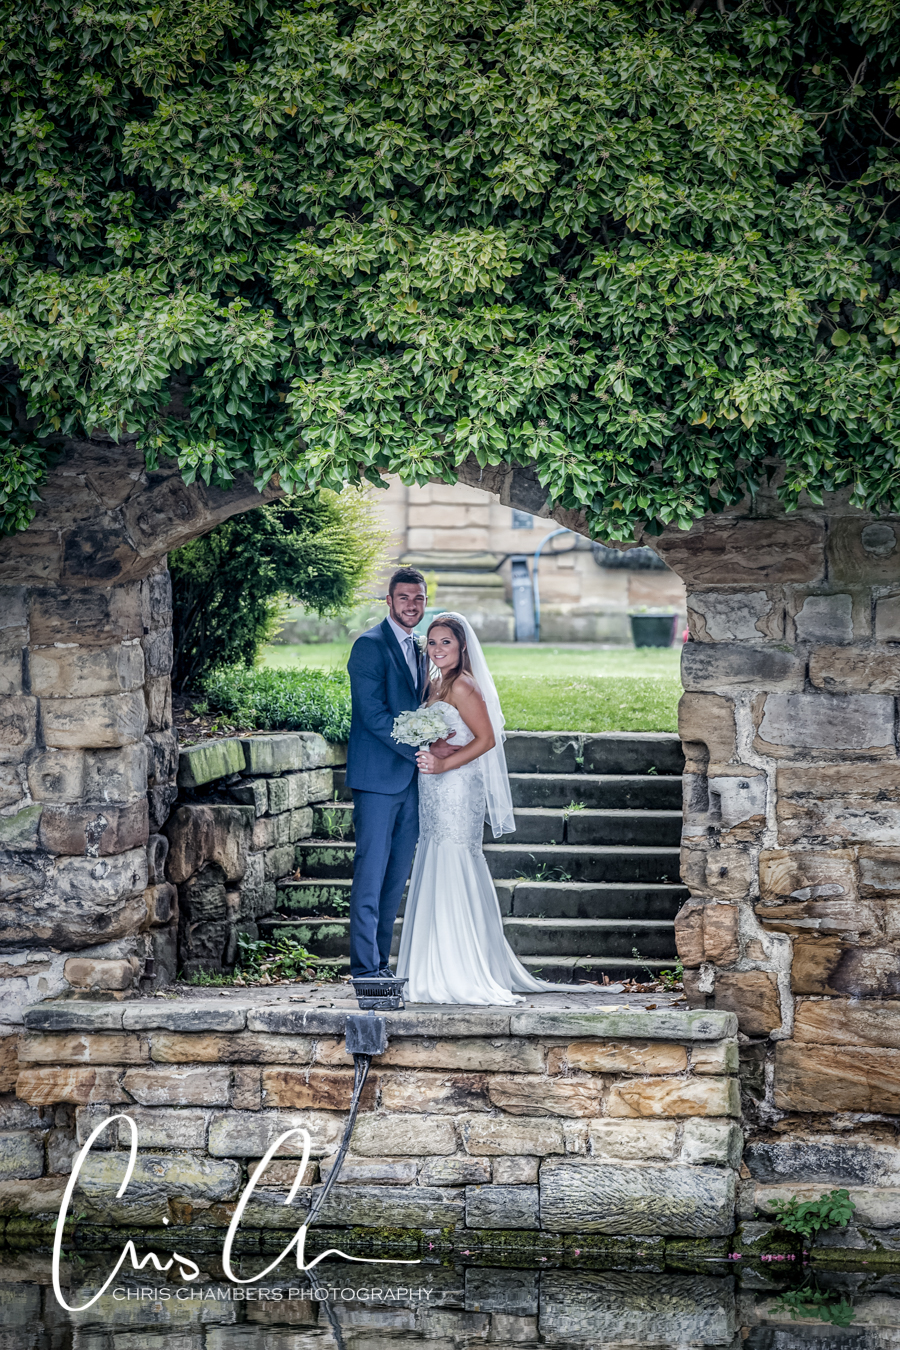 Waterton Park award winning wedding photographer, West Yorkshire wedding photography, Walton Hall Hotel weddings, Yorkshire photographer